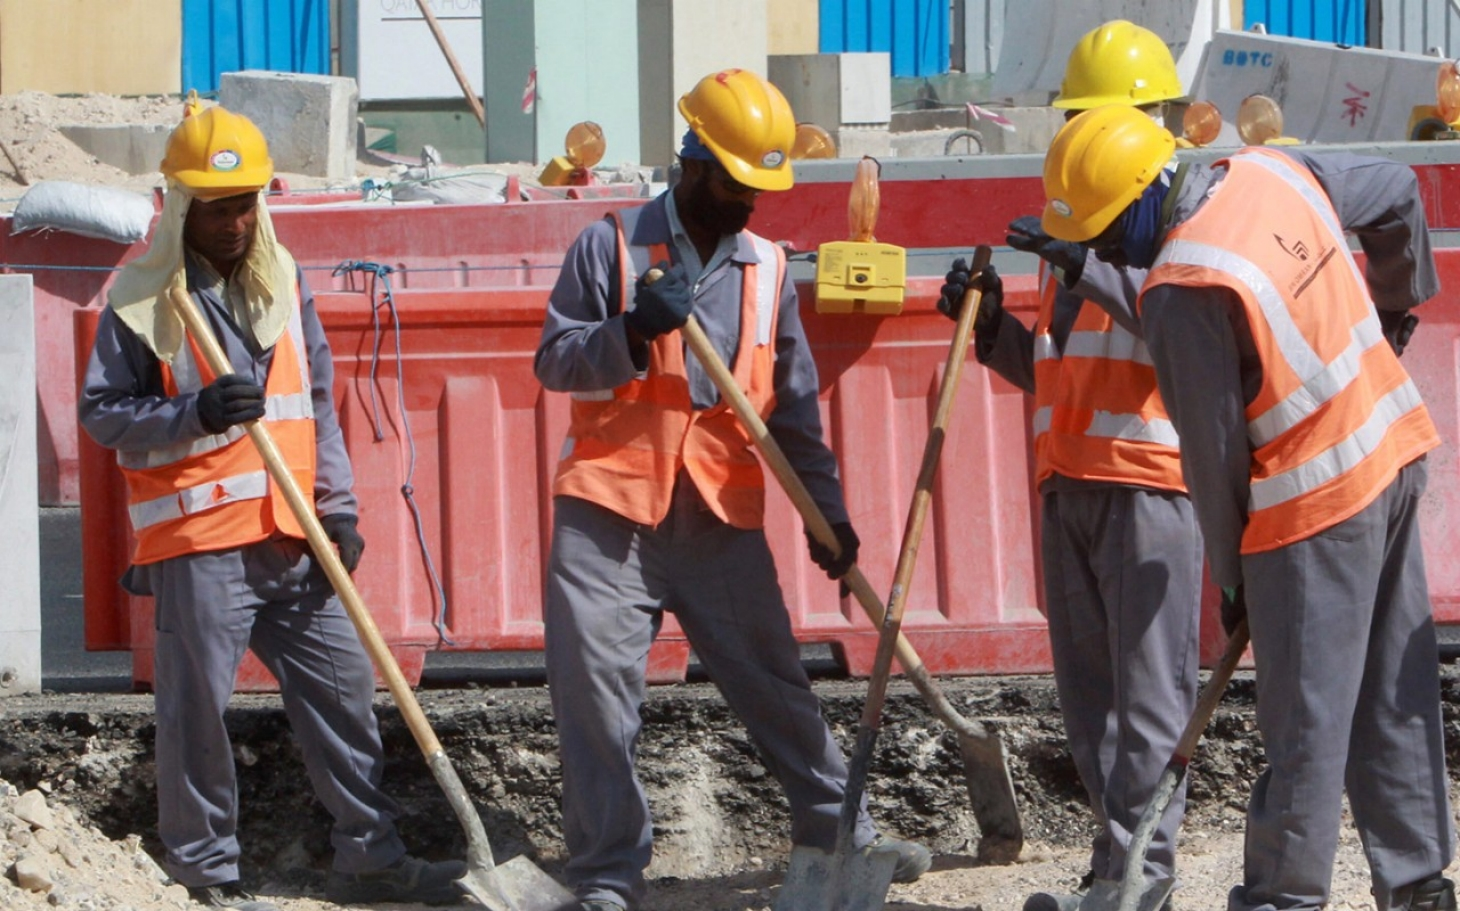 Qatar to introduce pay reforms for migrant workers